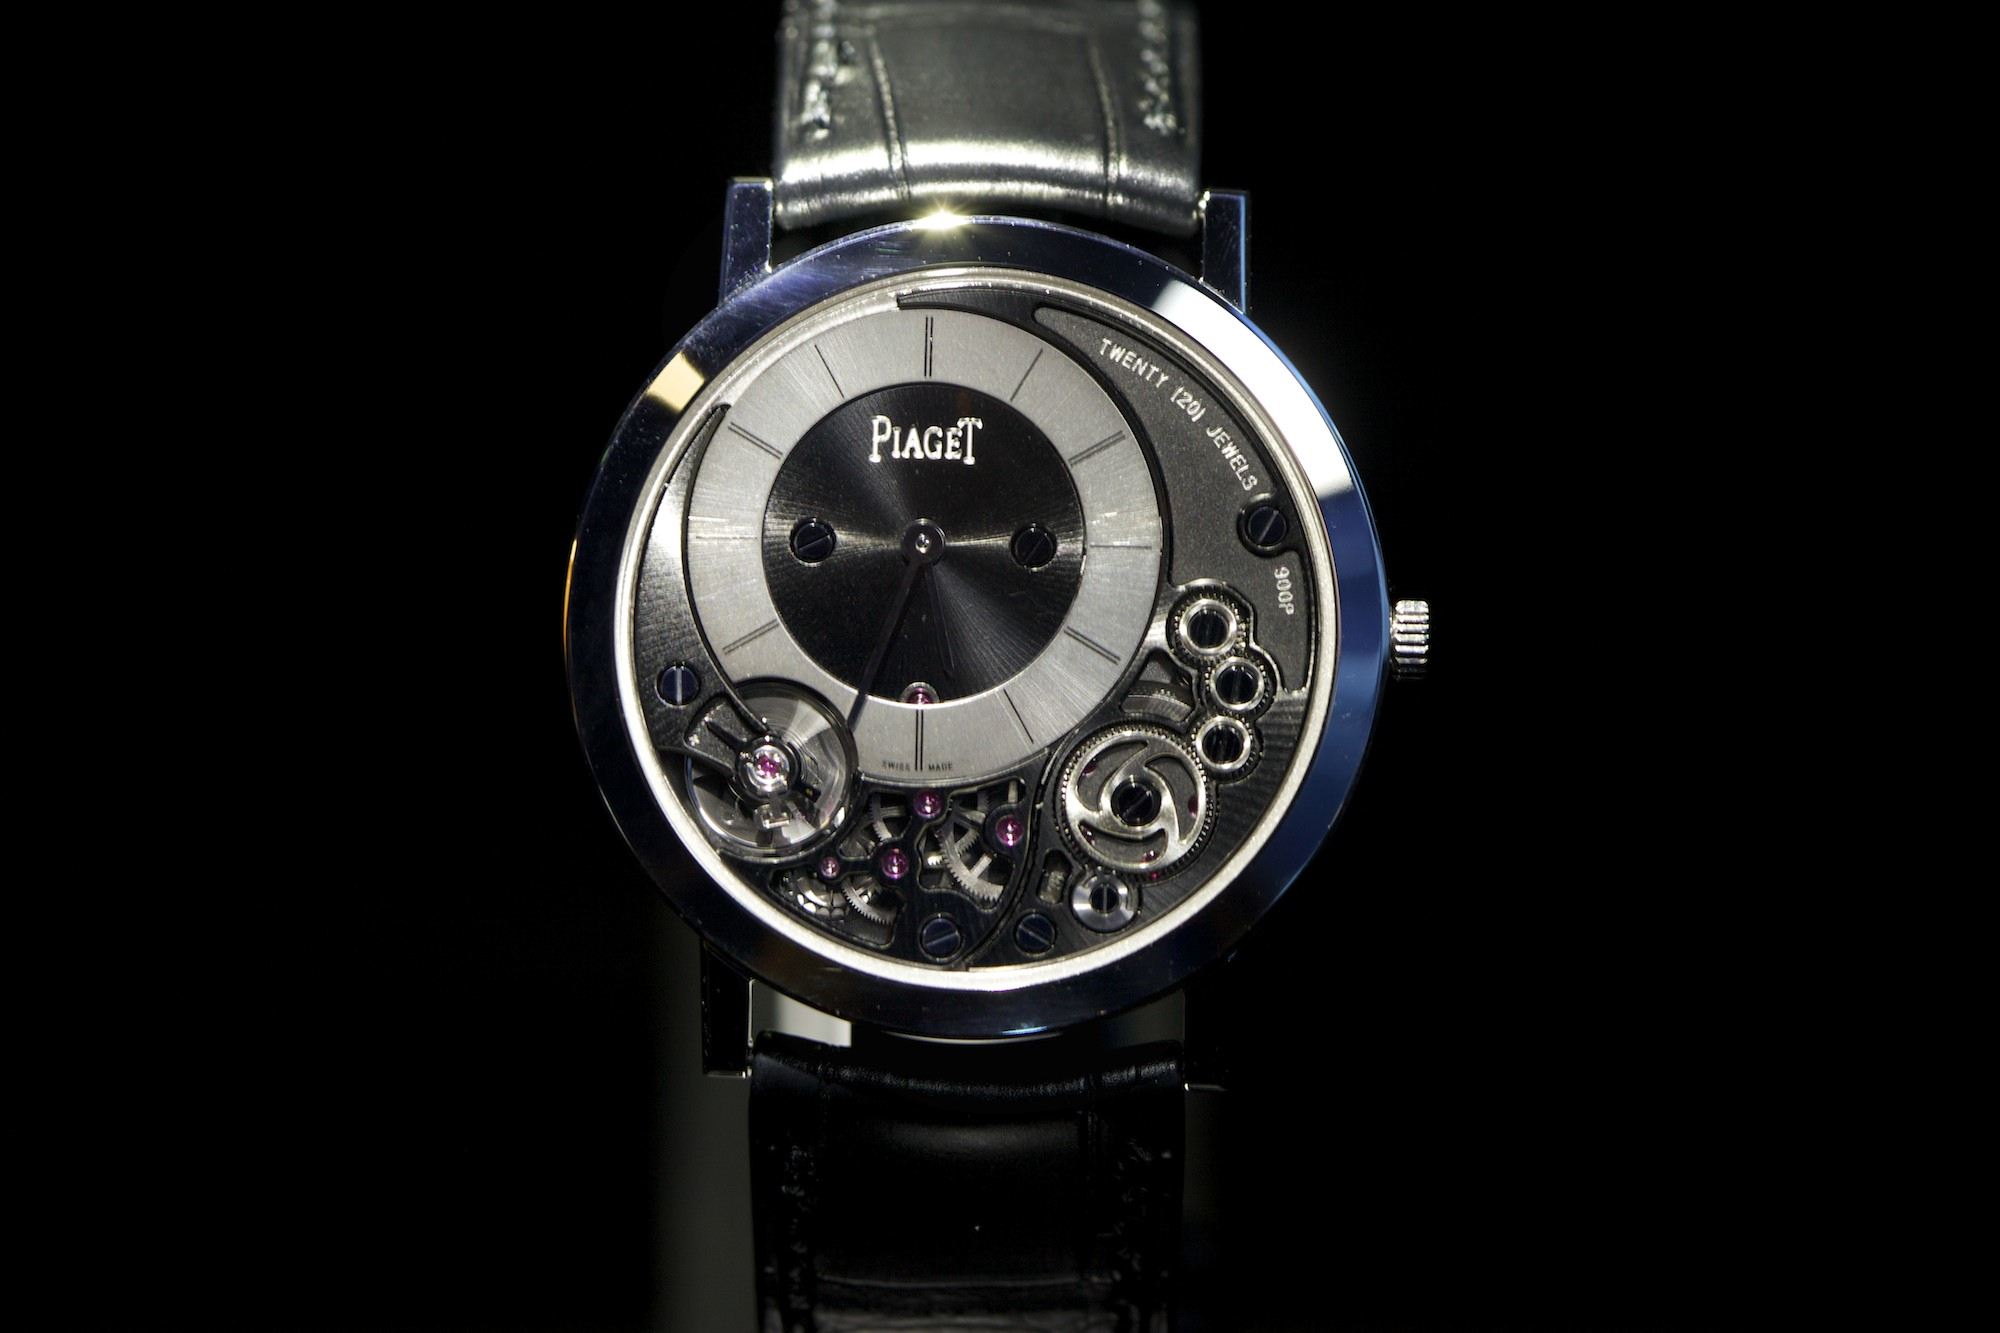 SIHH 2014 Piaget Altiplano 38 mm 900P